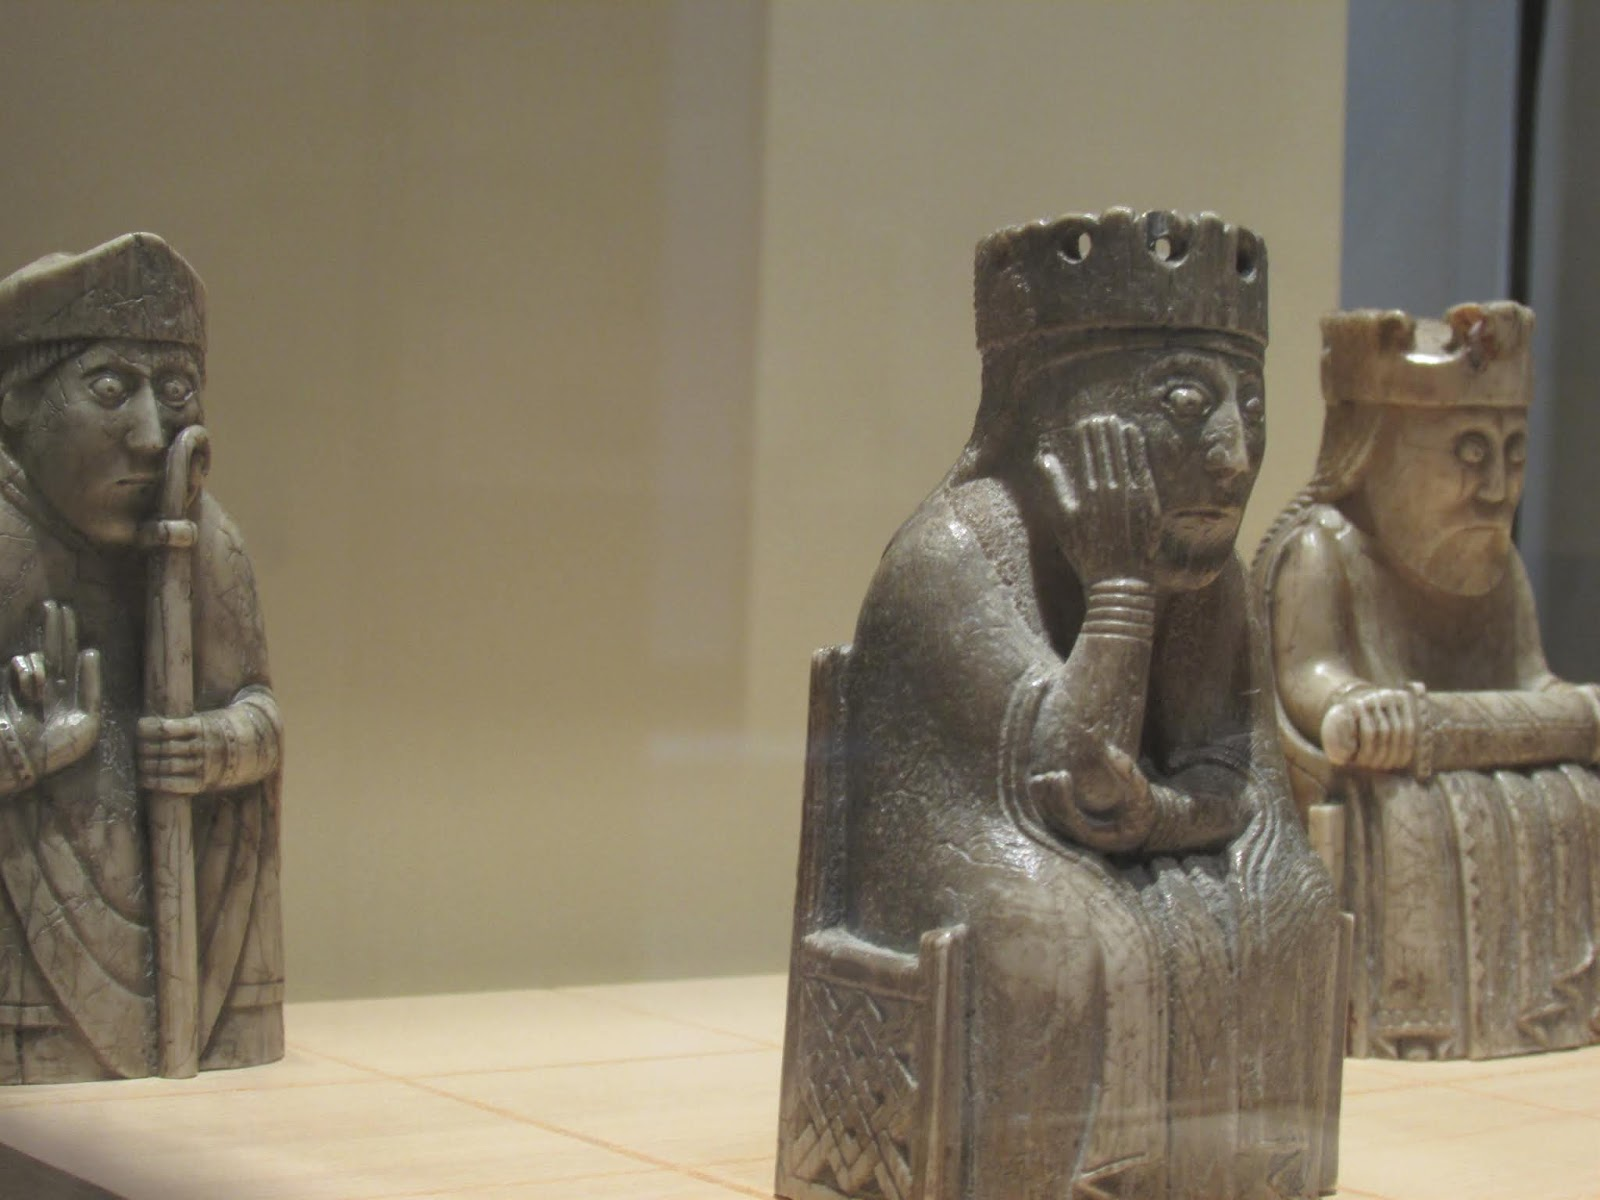 Maggie's City Guide to Edinburgh - Lewis chess men, National Museum of Scotland